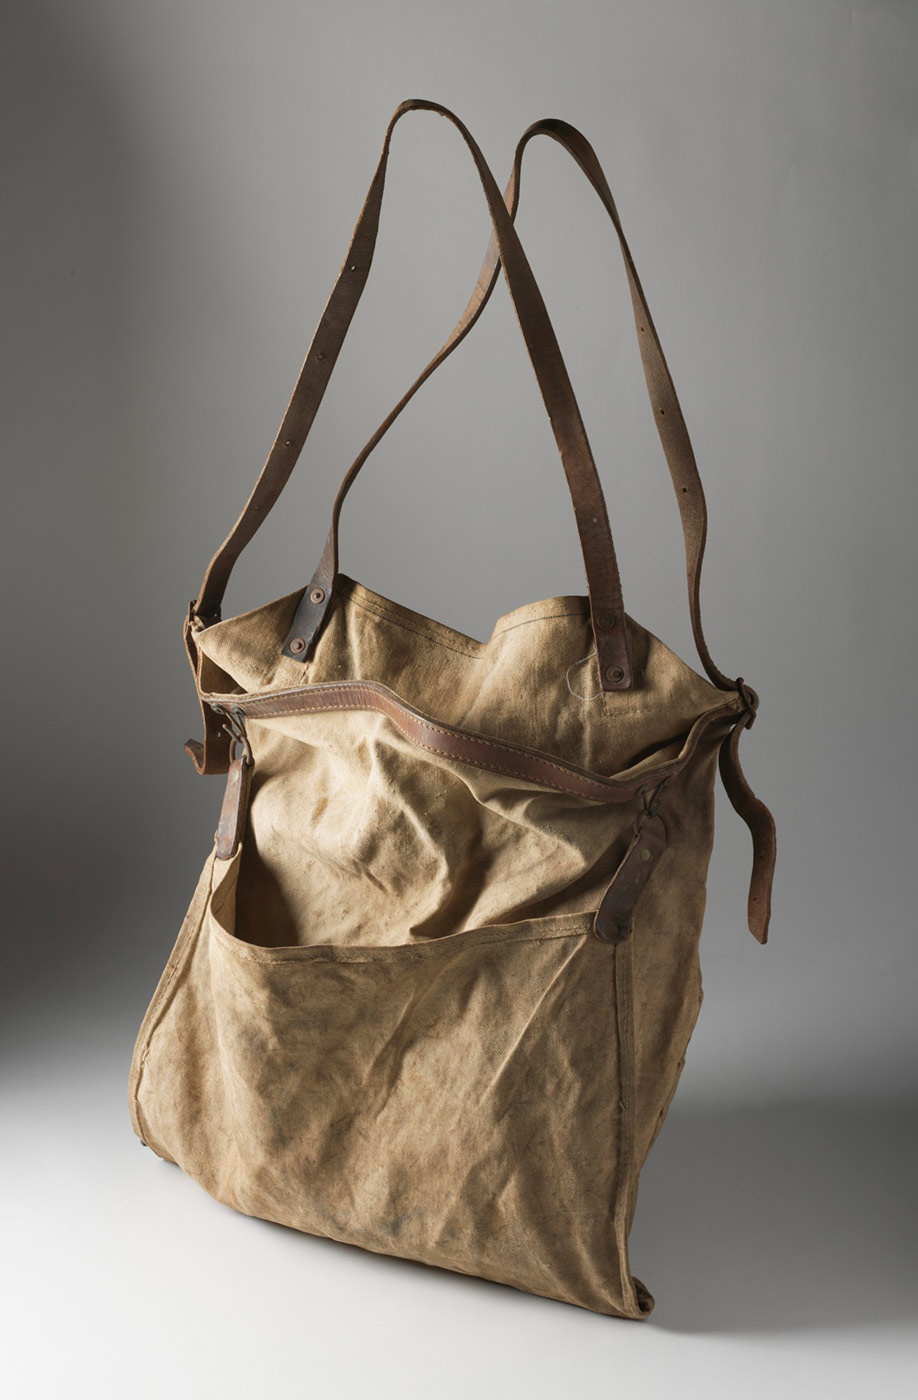 A canvas fruit picking apron featuring leather straps with metal buckles. The canvas of the apron is white but has discoloured from use. The front section is slightly higher than the back section and the top front corners of the apron are folded into triangles to provide the leather straps with an anchor point. One strap is attached from the top of the aprons proper left to the proper right side and the other is attached from the proper right top to the proper left side. A leather strap runs along the back top edge of the apron finishing under each arm of apron. - click to view larger image